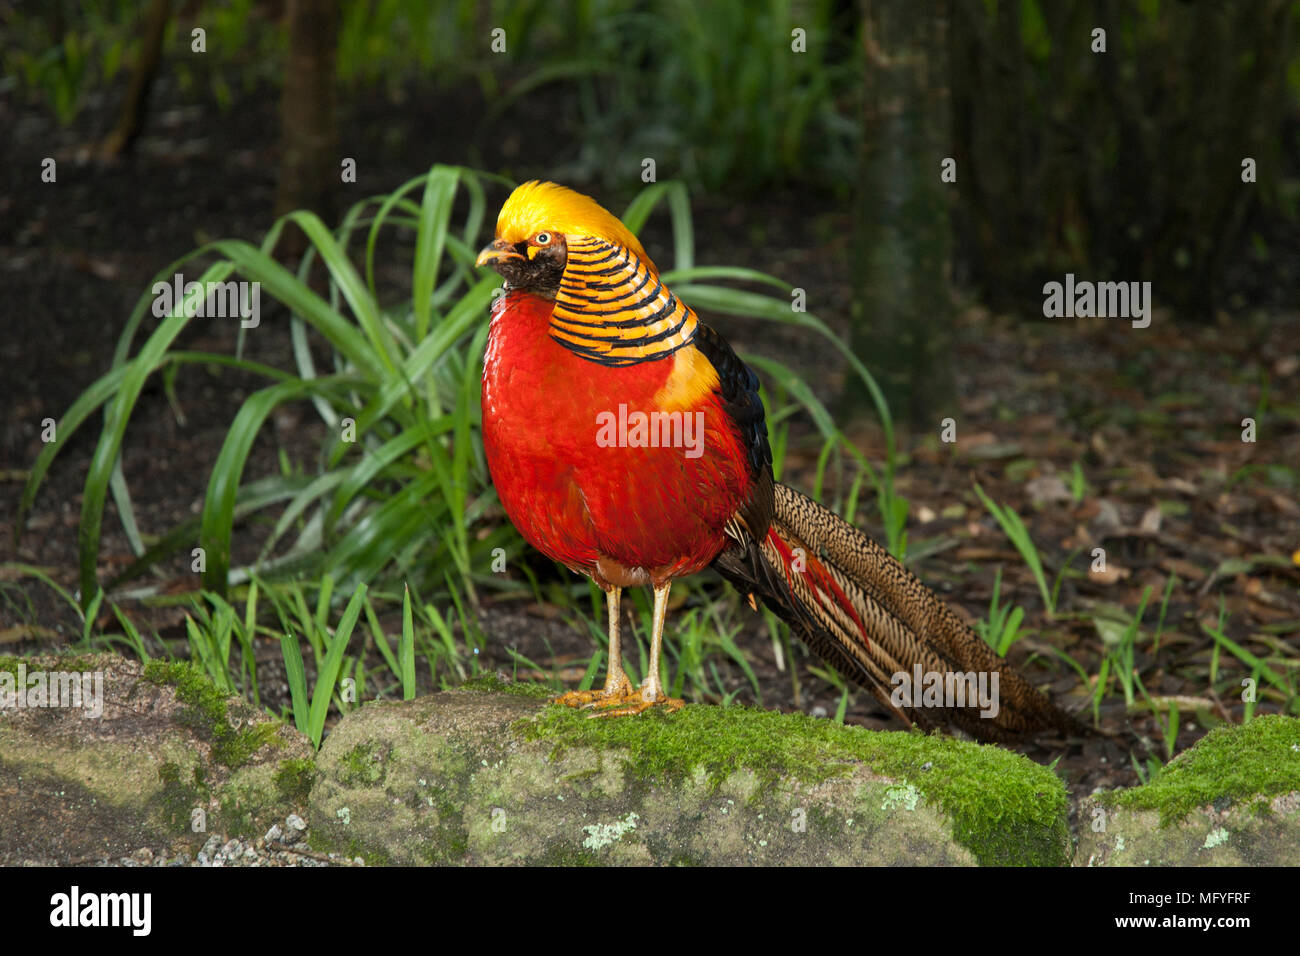 Male Golden Pheasant /Chinese Pheasant standing on a stone with bright red crest, striped black/ gold collar, brilliant red plumage and long tail. - Stock Image